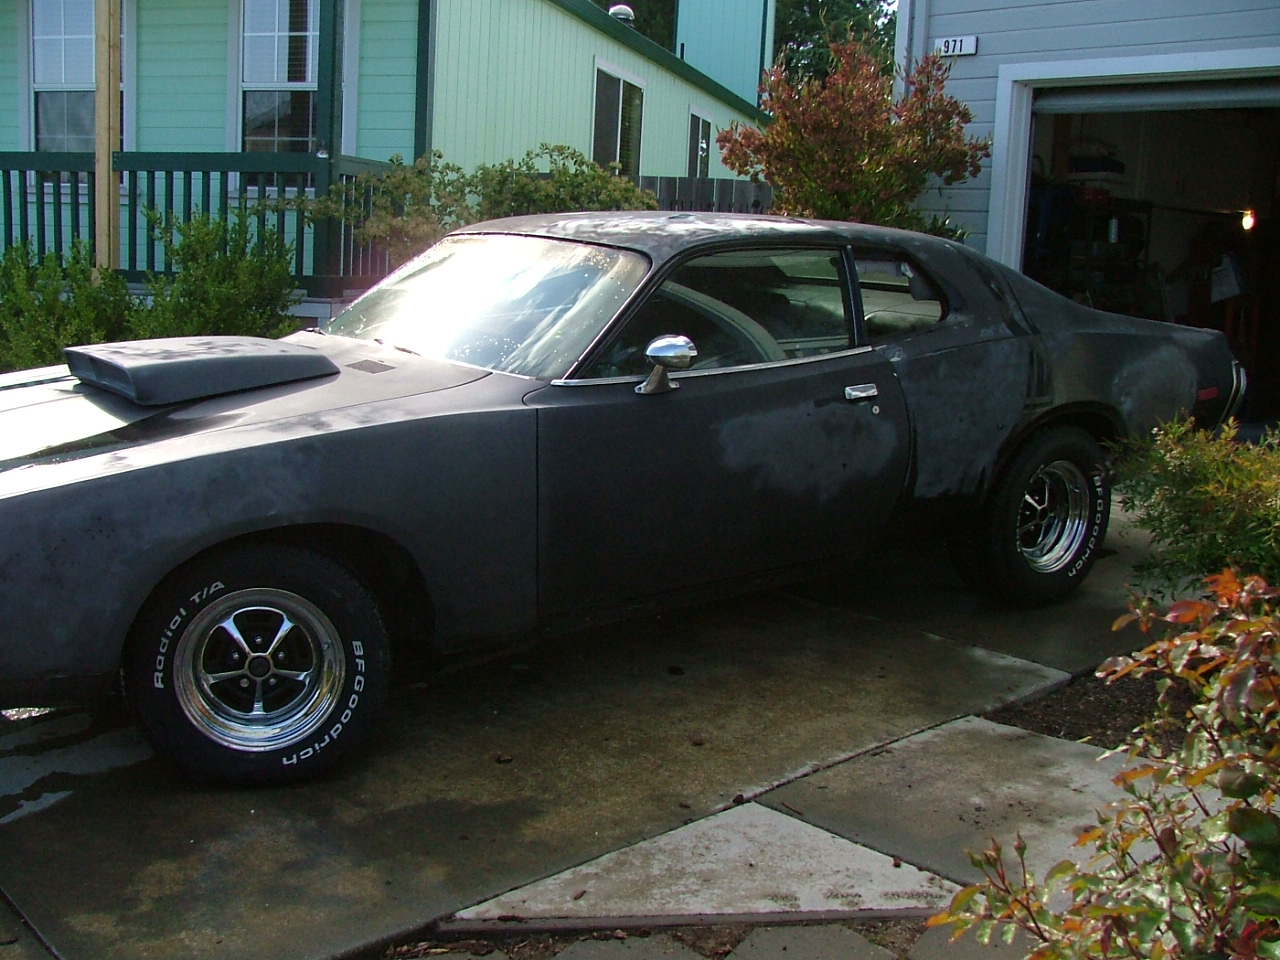 Jeramy Gates Jamie Sedgwick The Official Blog My 73 Dodge 1968 Charger Project Car Burn Notice